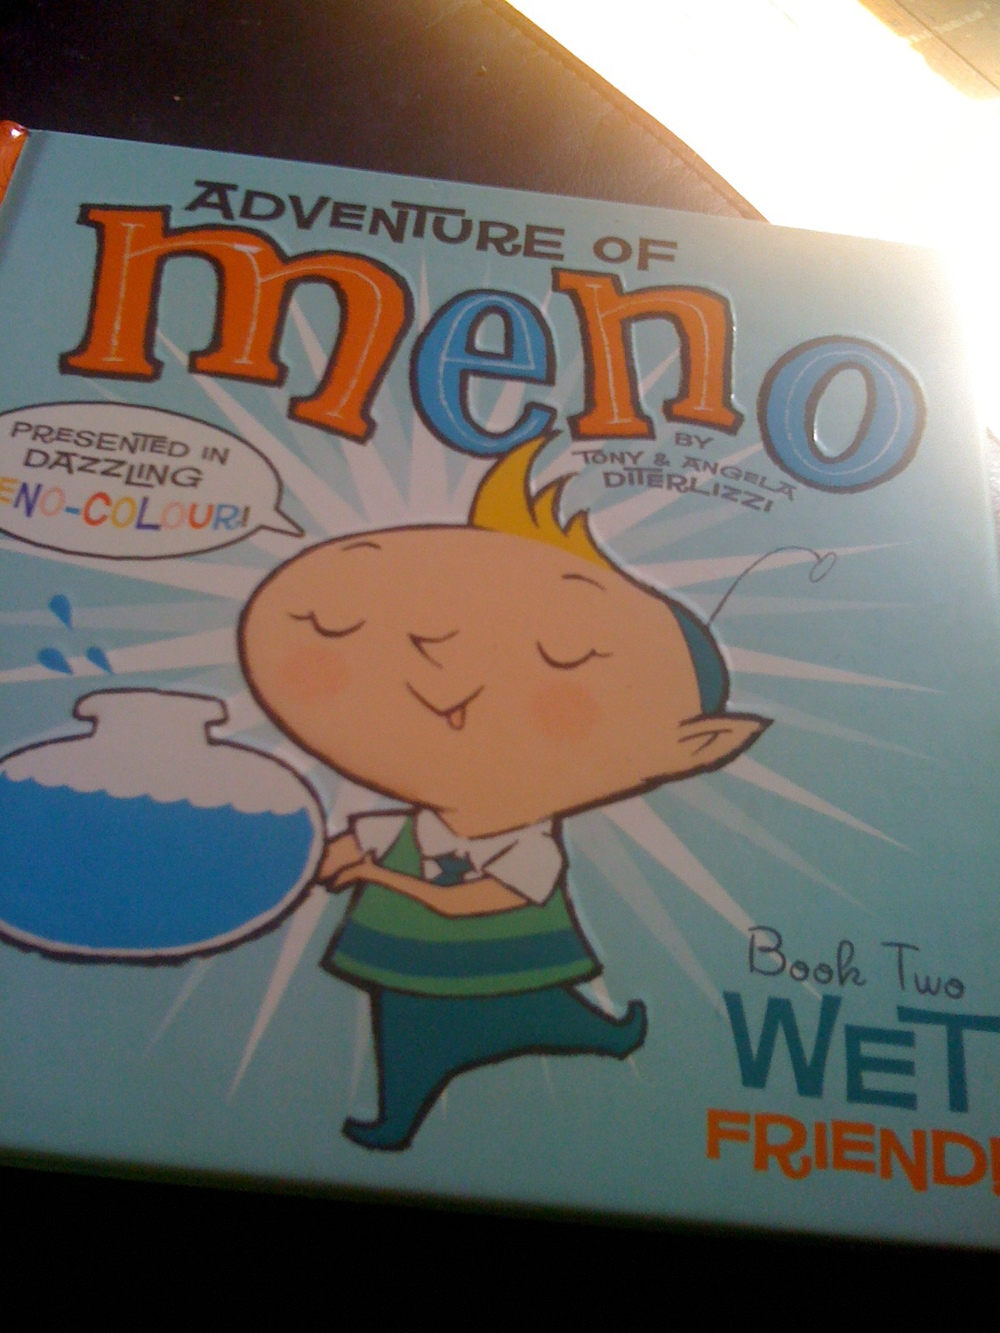 Adventure of Meno, Bizarre Faux Engrish/Atomic Era Stylised Children's Book